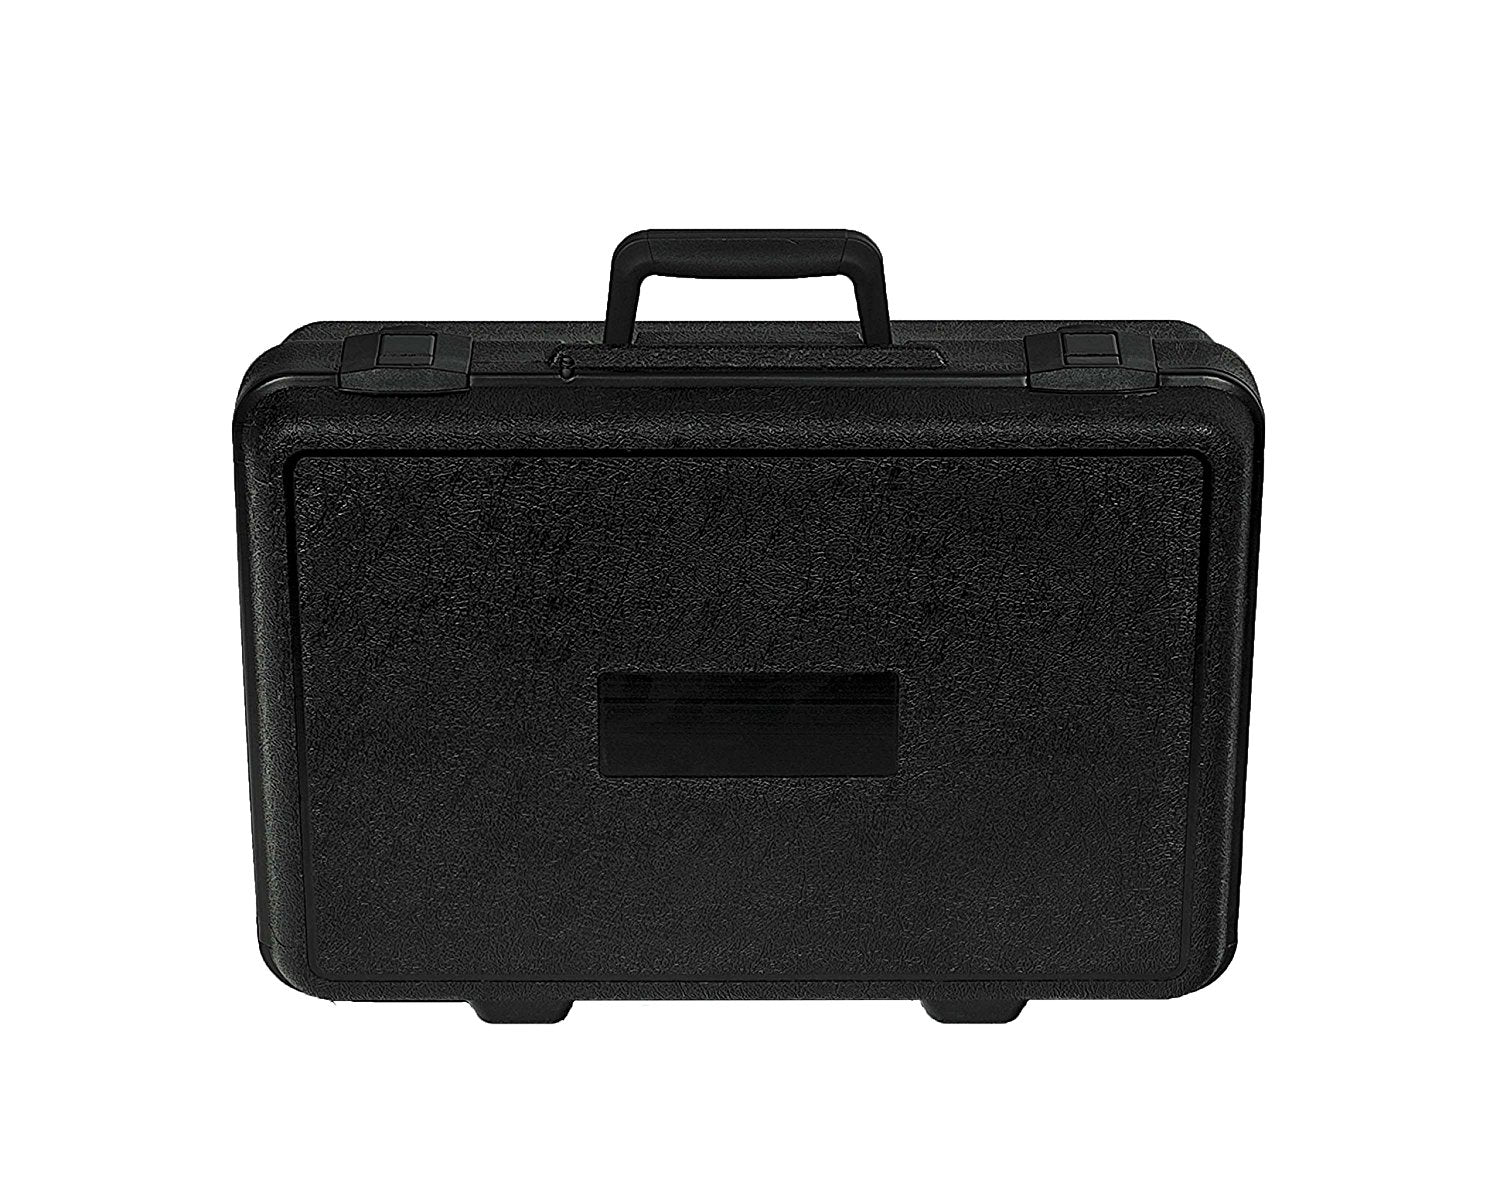 THE GOLD PROMPTER / RAIL-A-PROMPTER CASE